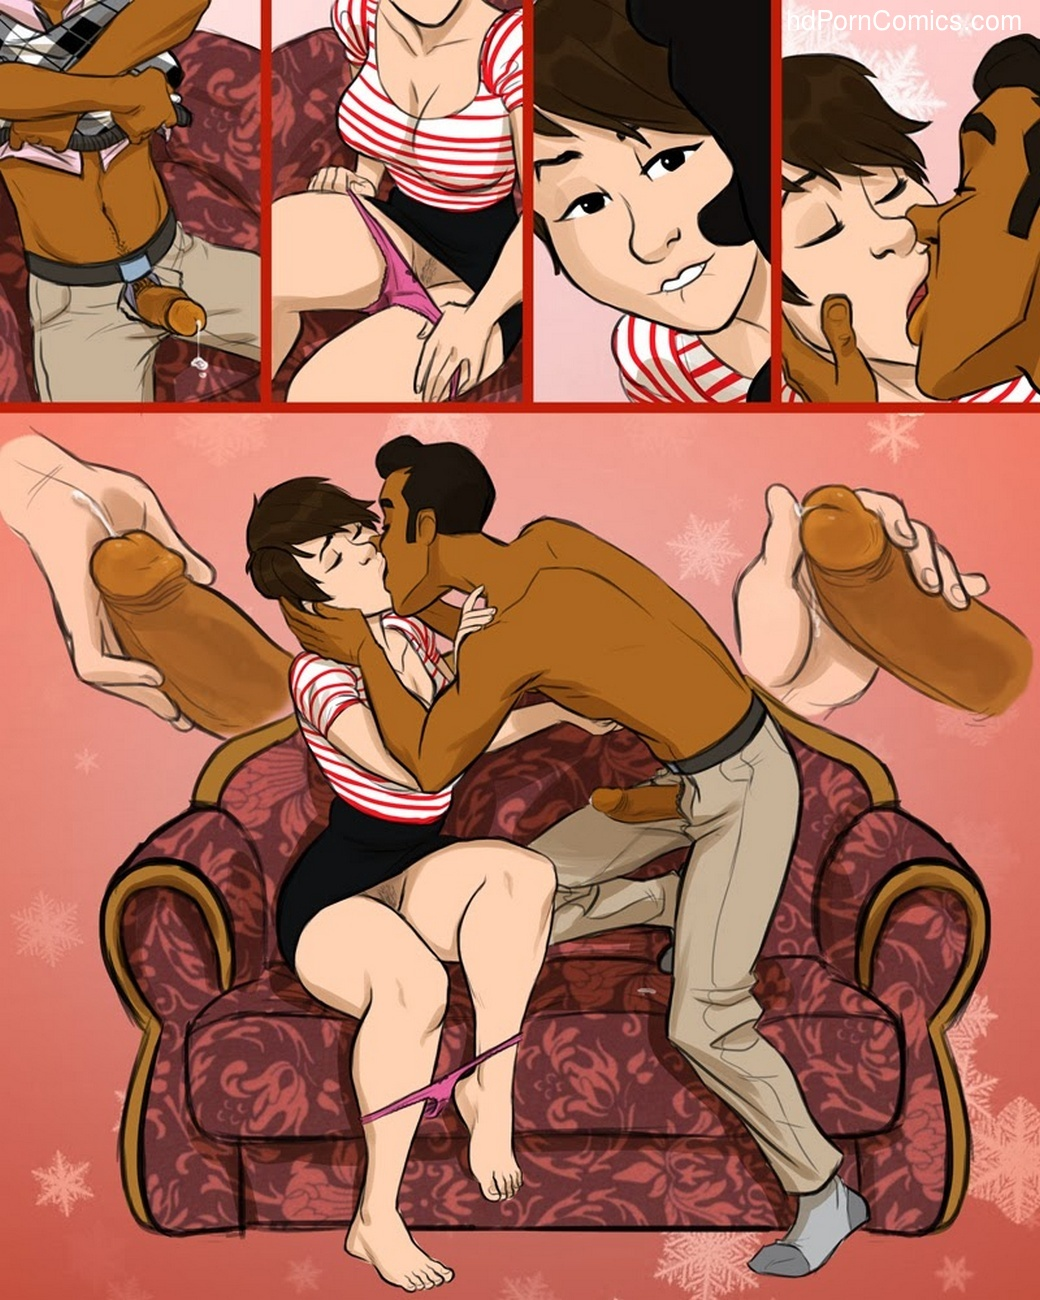 All-I-Want-For-Xmas10 free sex comic